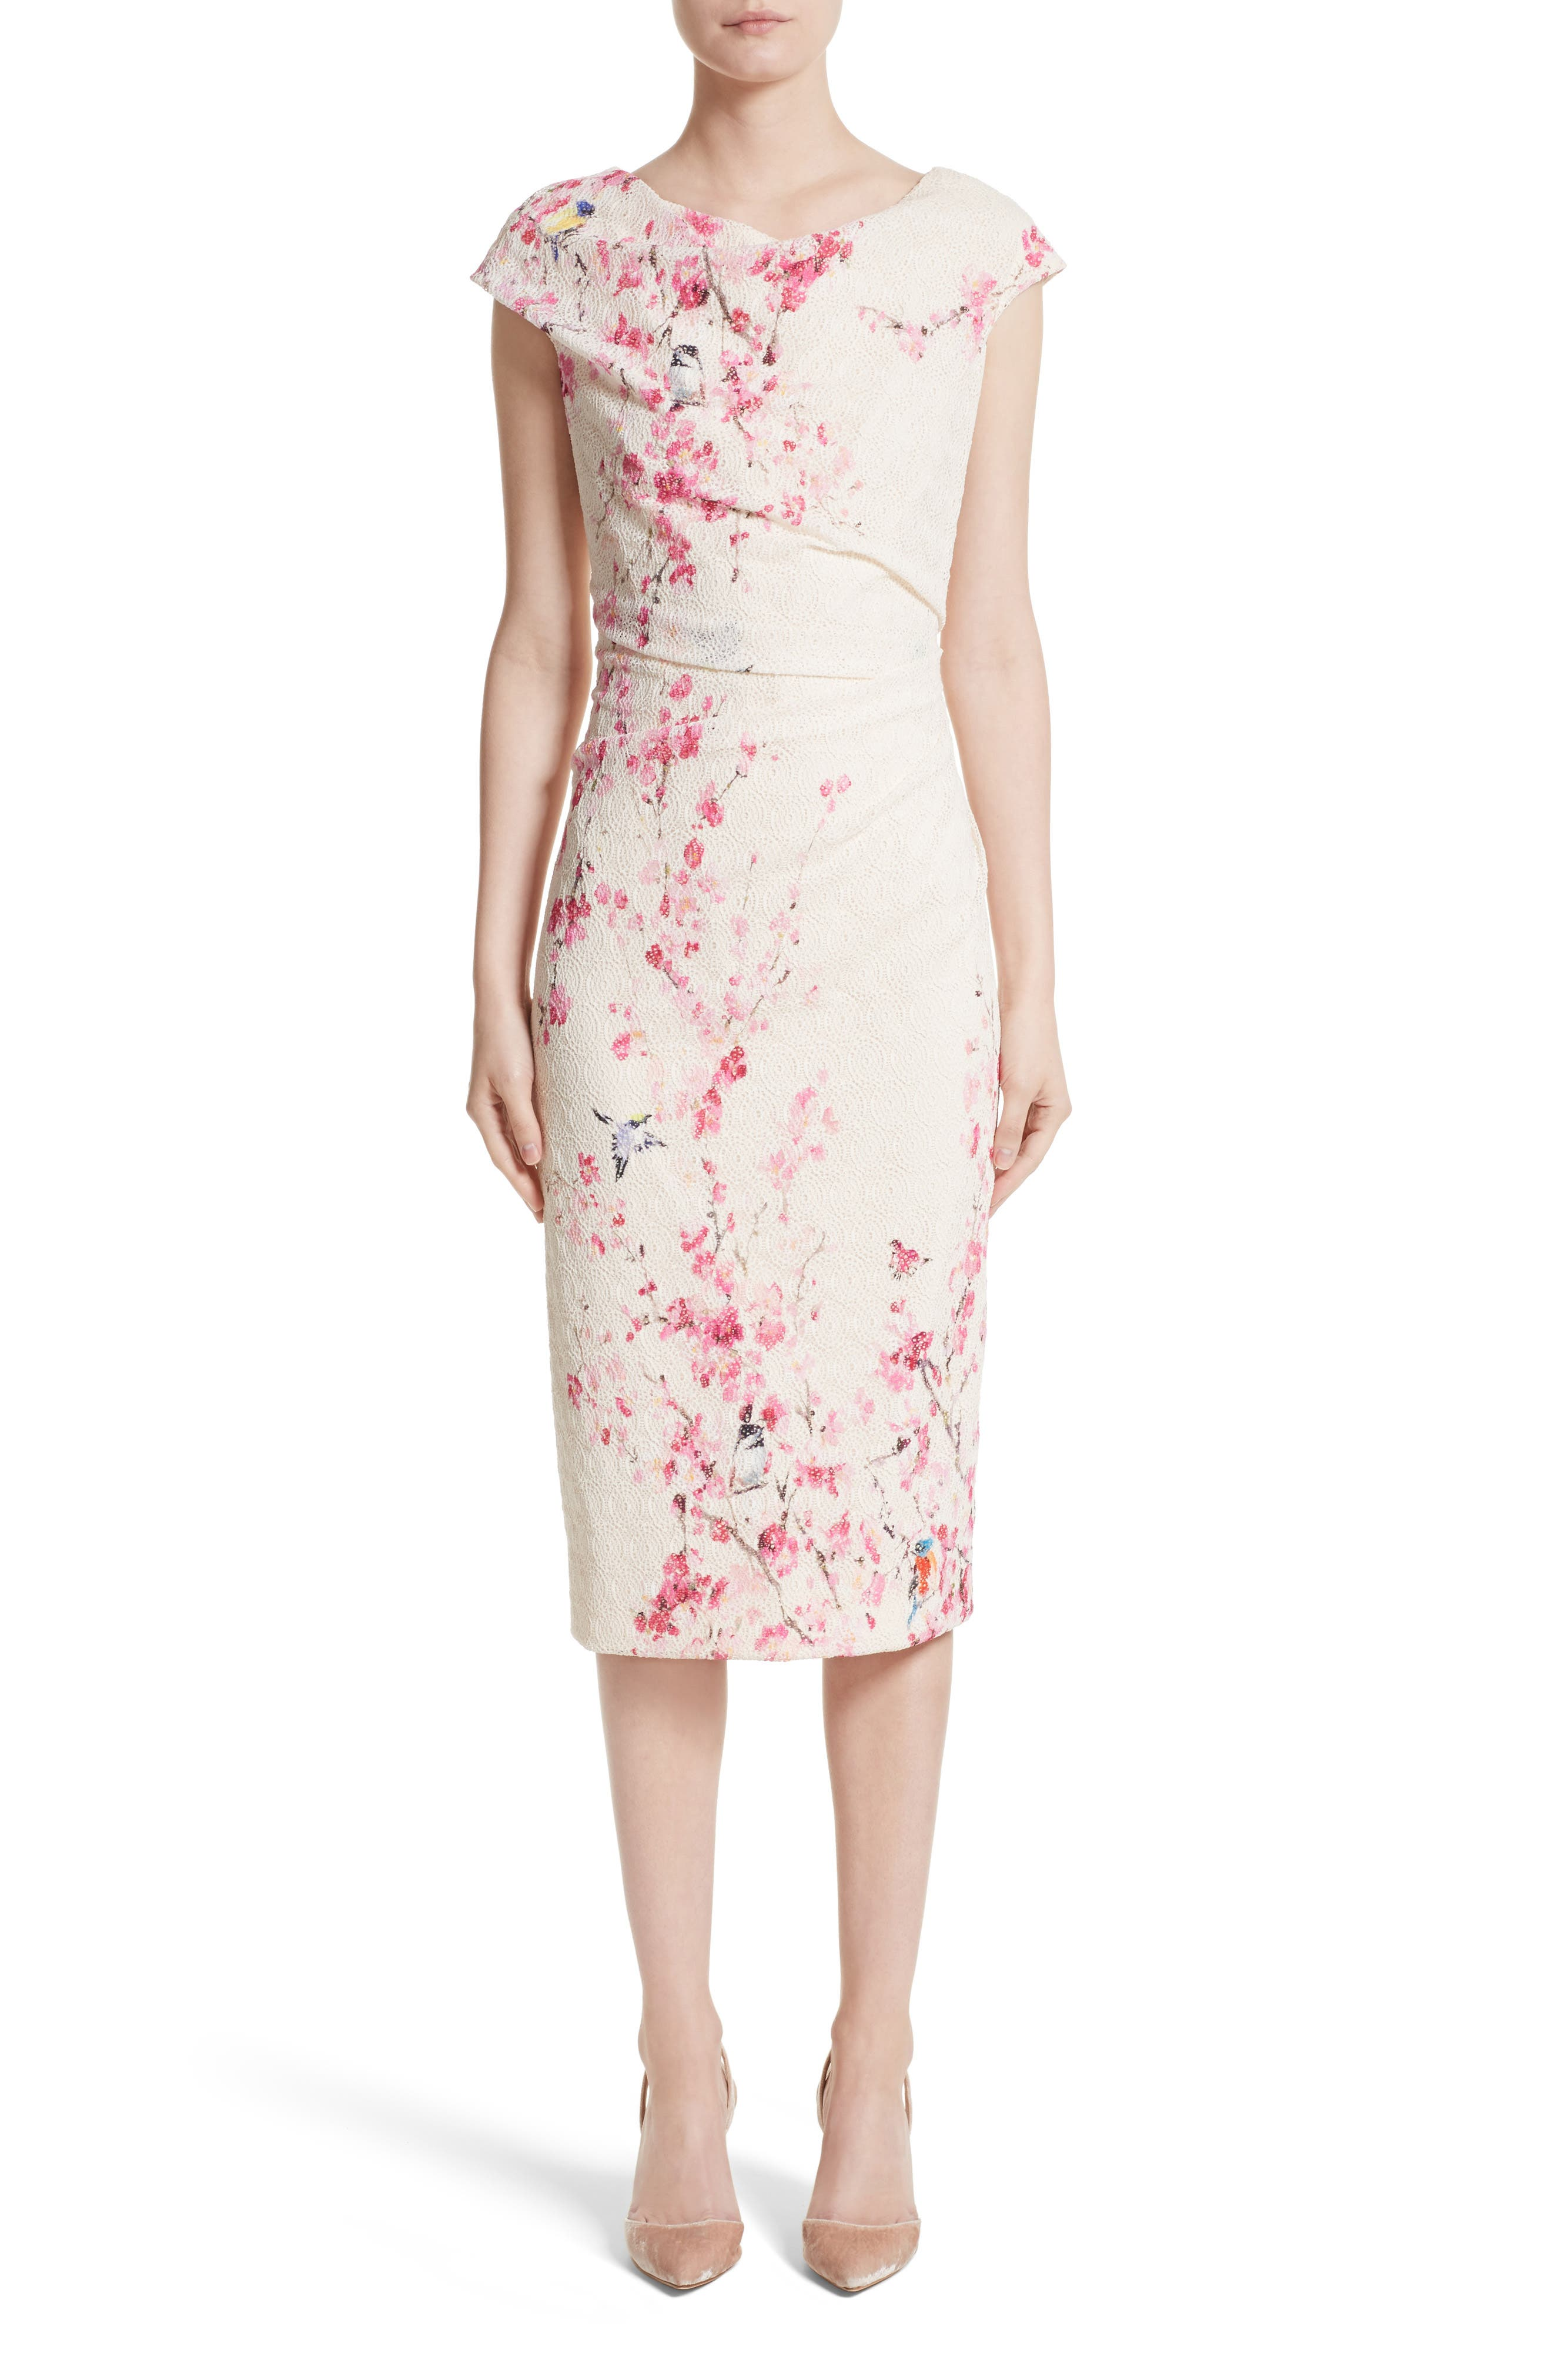 Monique Lhuillier Cherry Blossom Sheath Dress